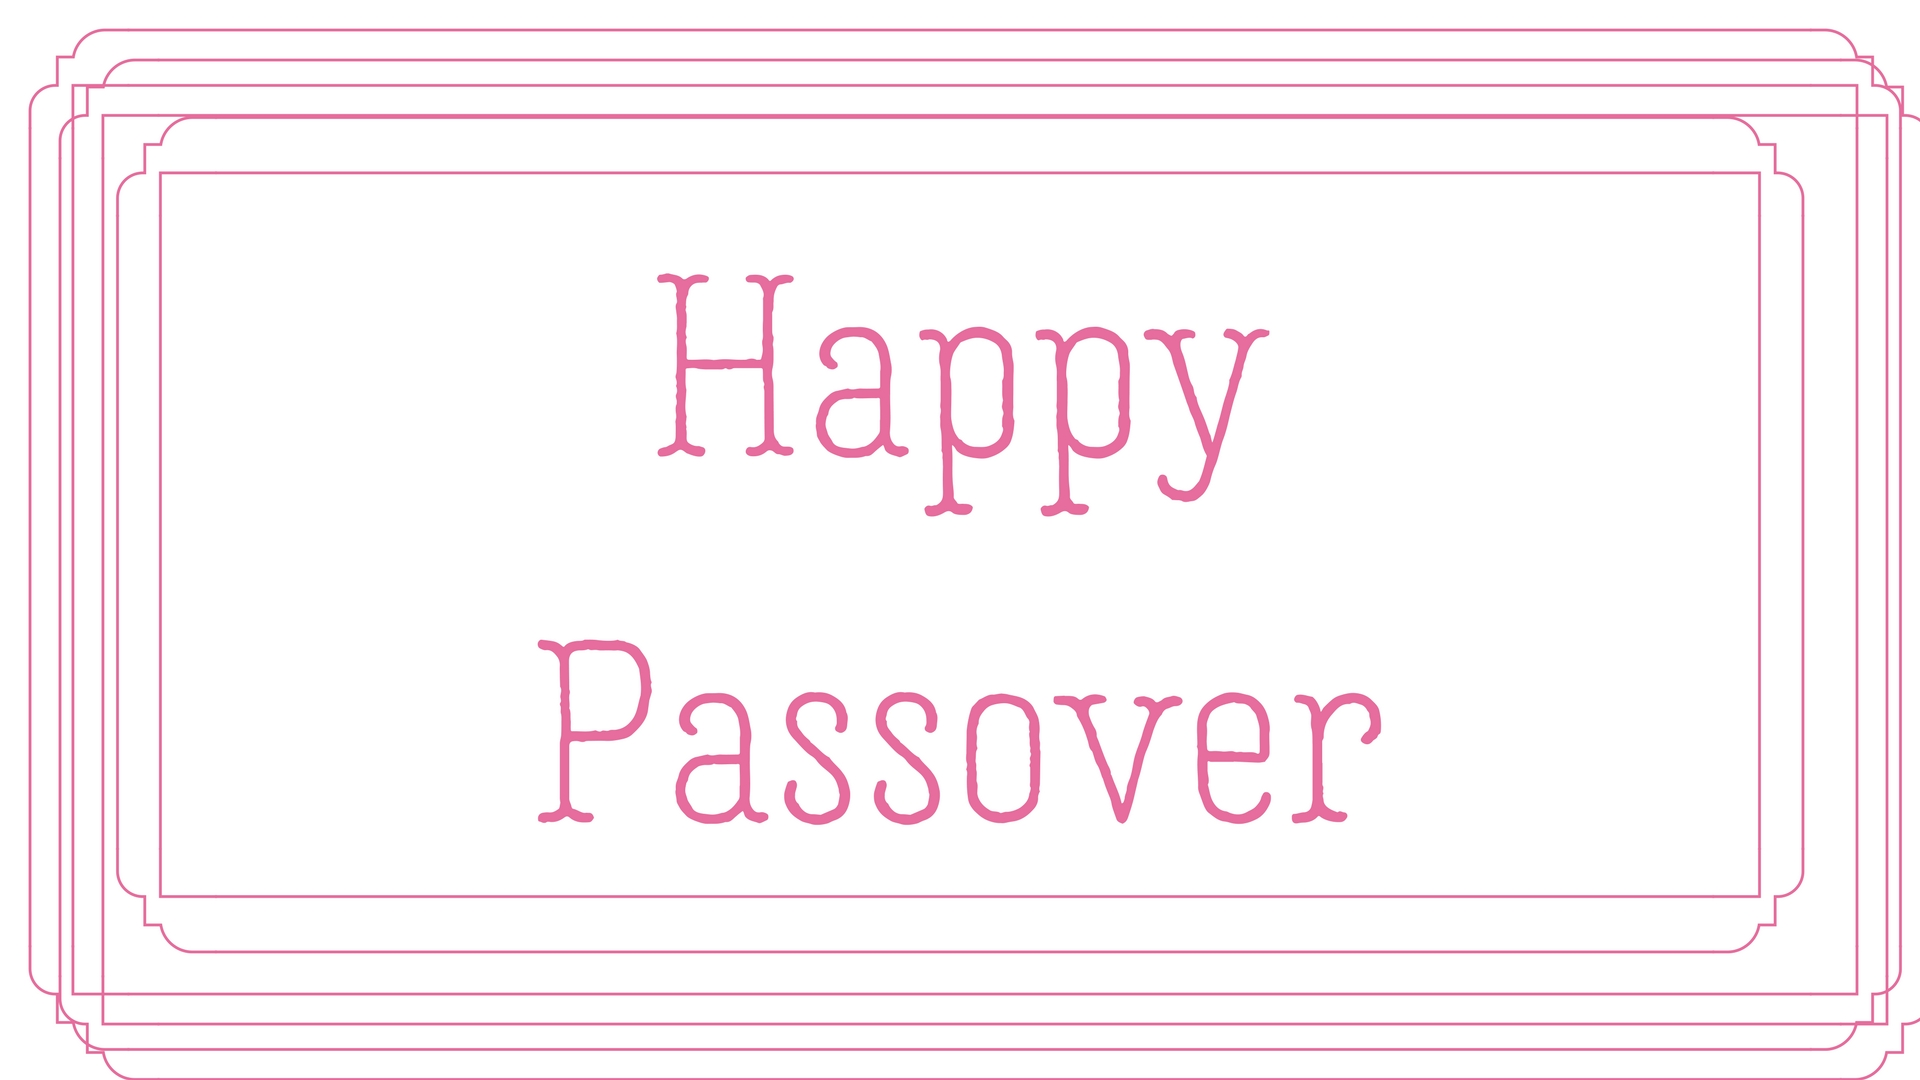 Happy Passover Rectangle Frame Greeting Card Postcard 21